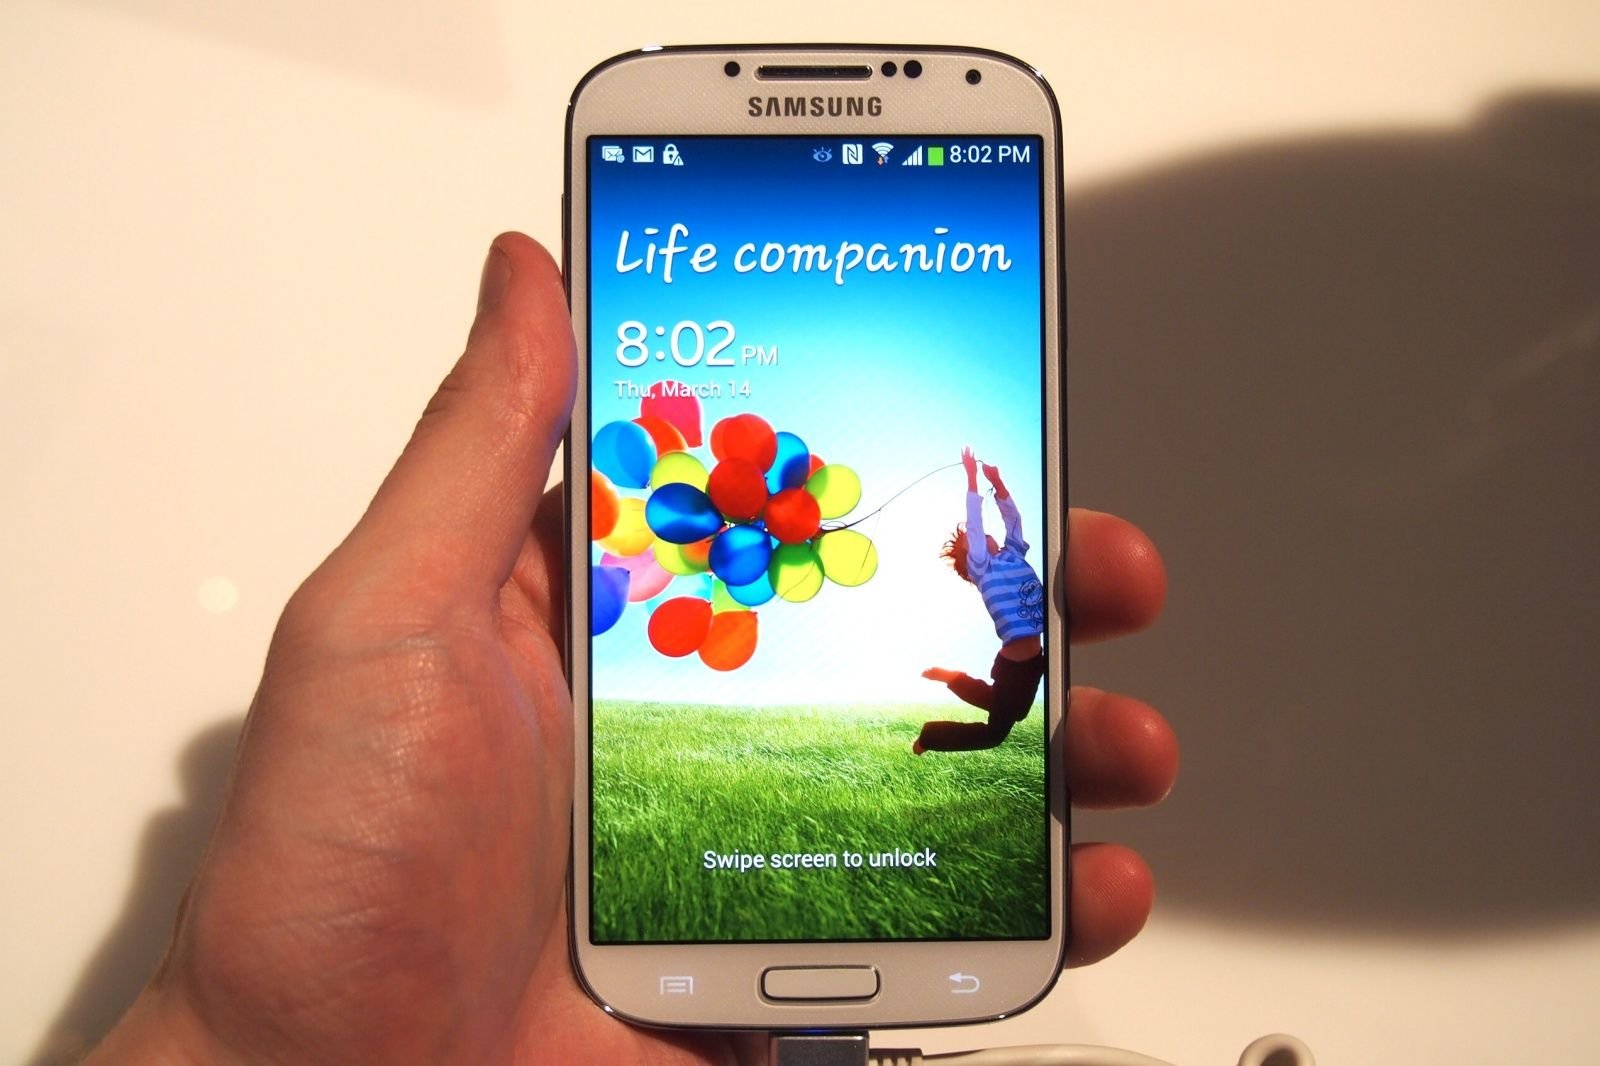 How to Install a Custom ROM on the Samsung Galaxy S4